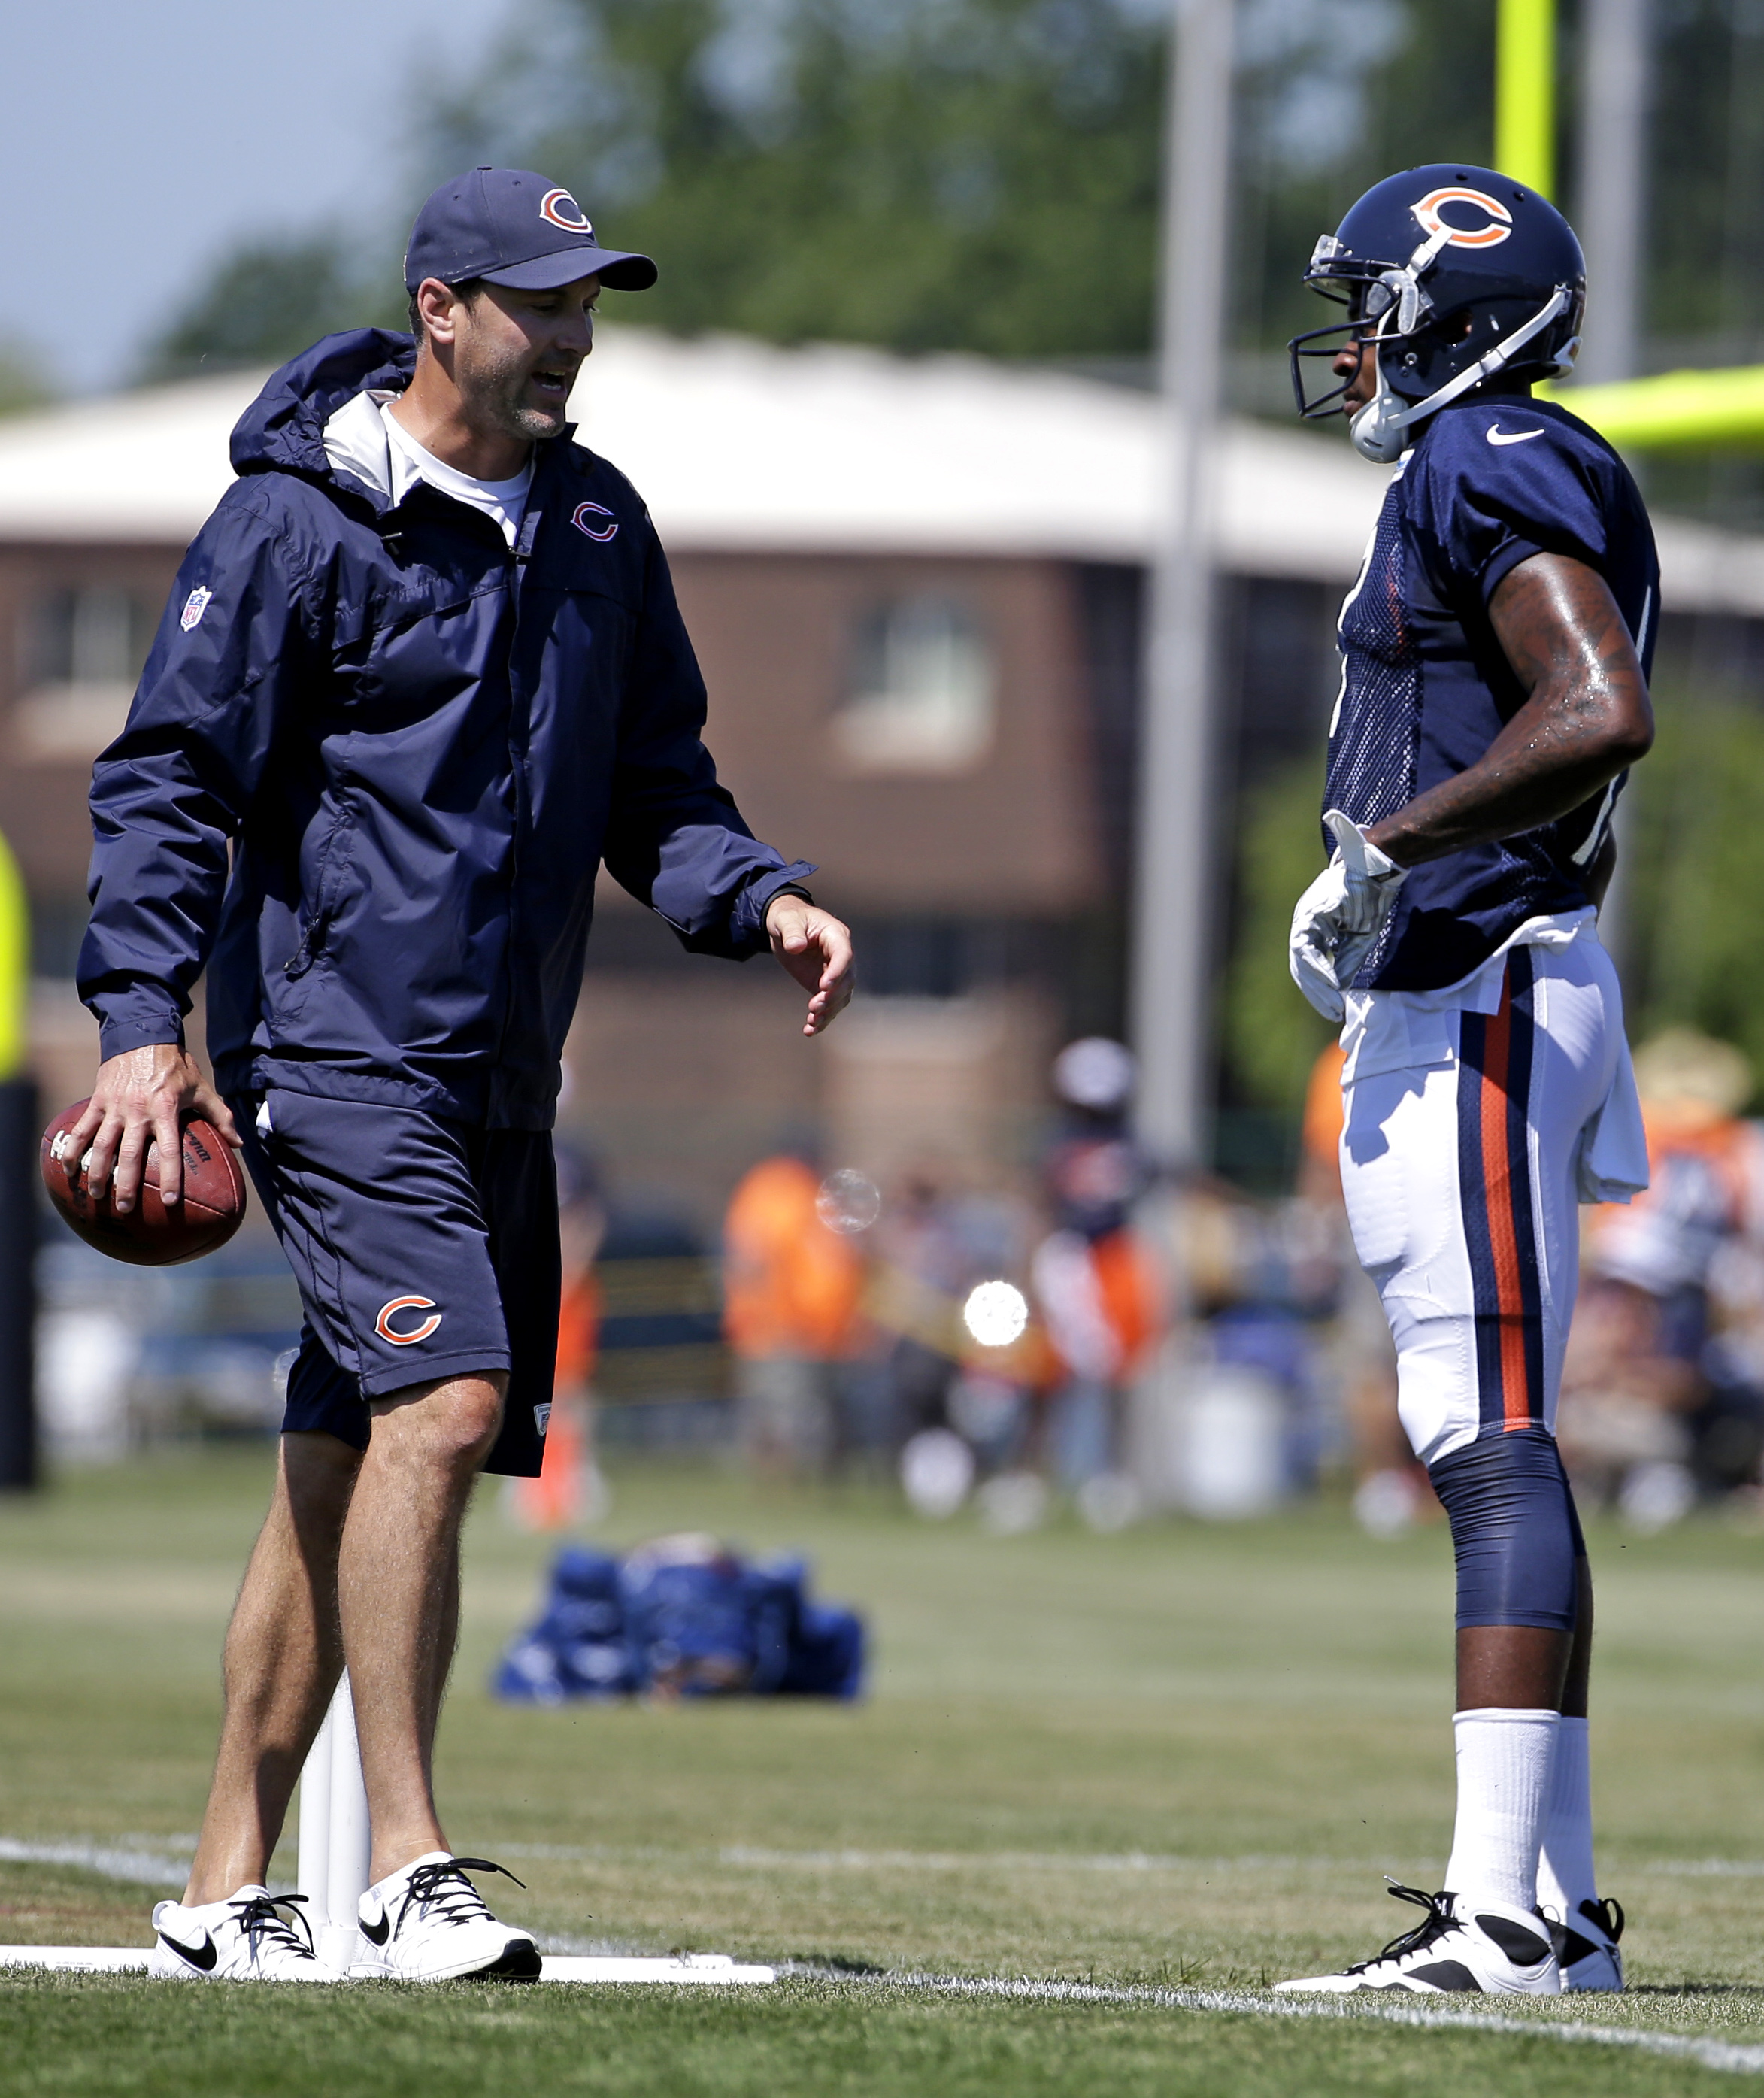 Chicago Bears wide receivers coach Mike Groh, left, talks with wide receiver Alshon Jeffery during NFL football training camp at Olivet Nazarene University, Sunday, Aug. 2, 2015, in Bourbonnais, Ill. (AP Photo/Nam Y. Huh)